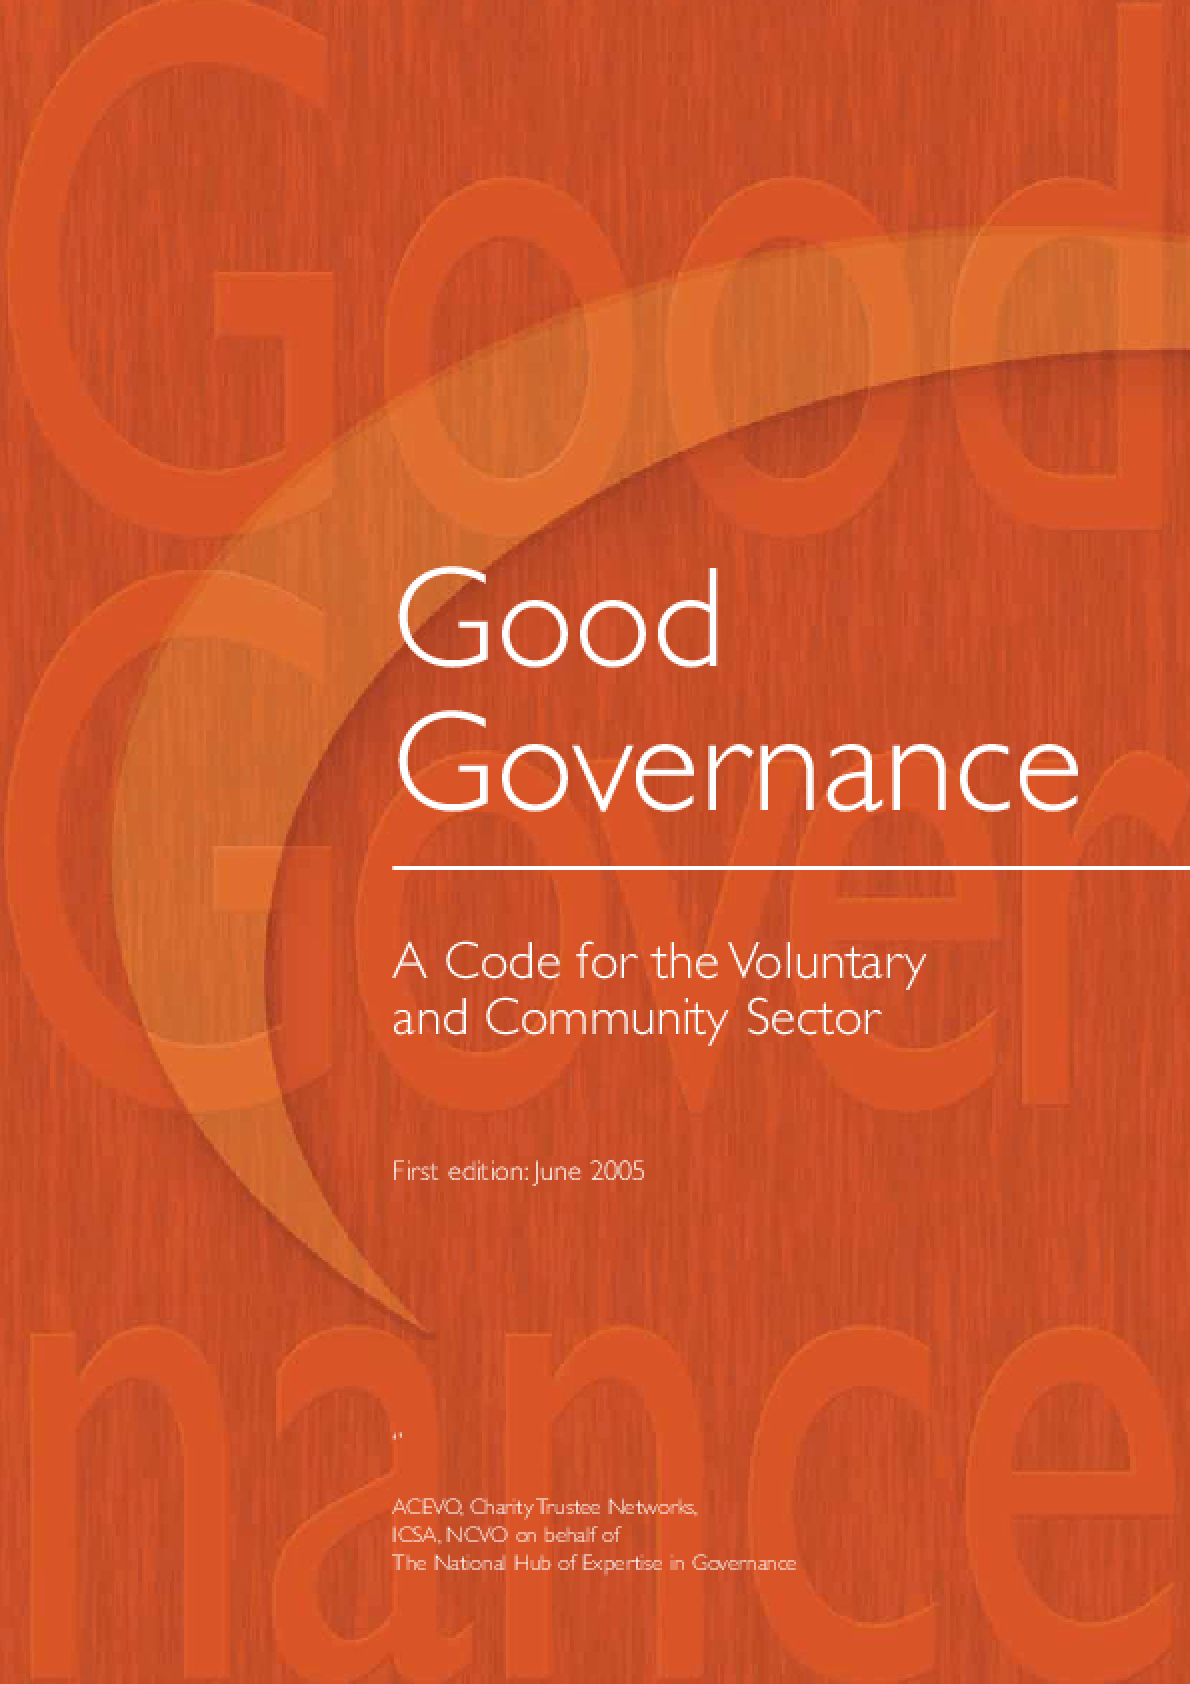 Good Governance: A Code For the Voluntary and Community Sector